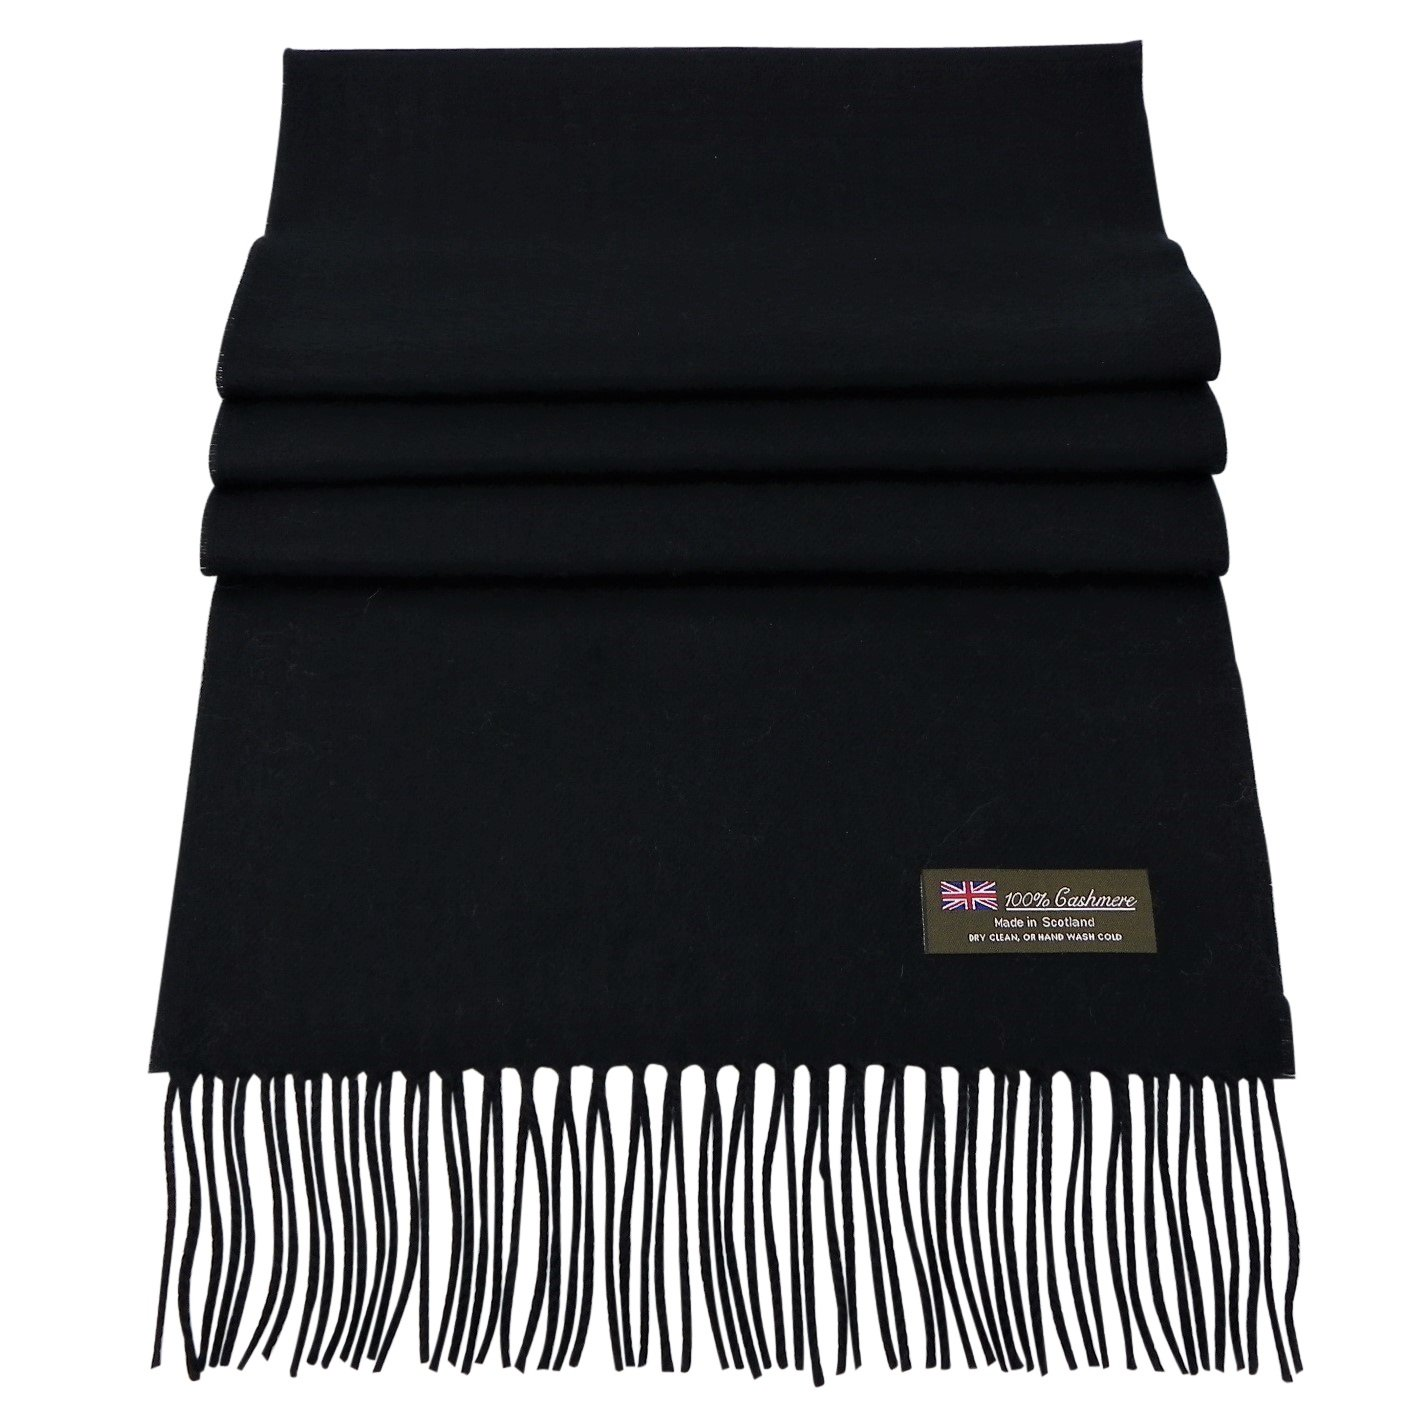 Rosemarie Collections 100% Cashmere Winter Scarf Made In Scotland (Jet Black)